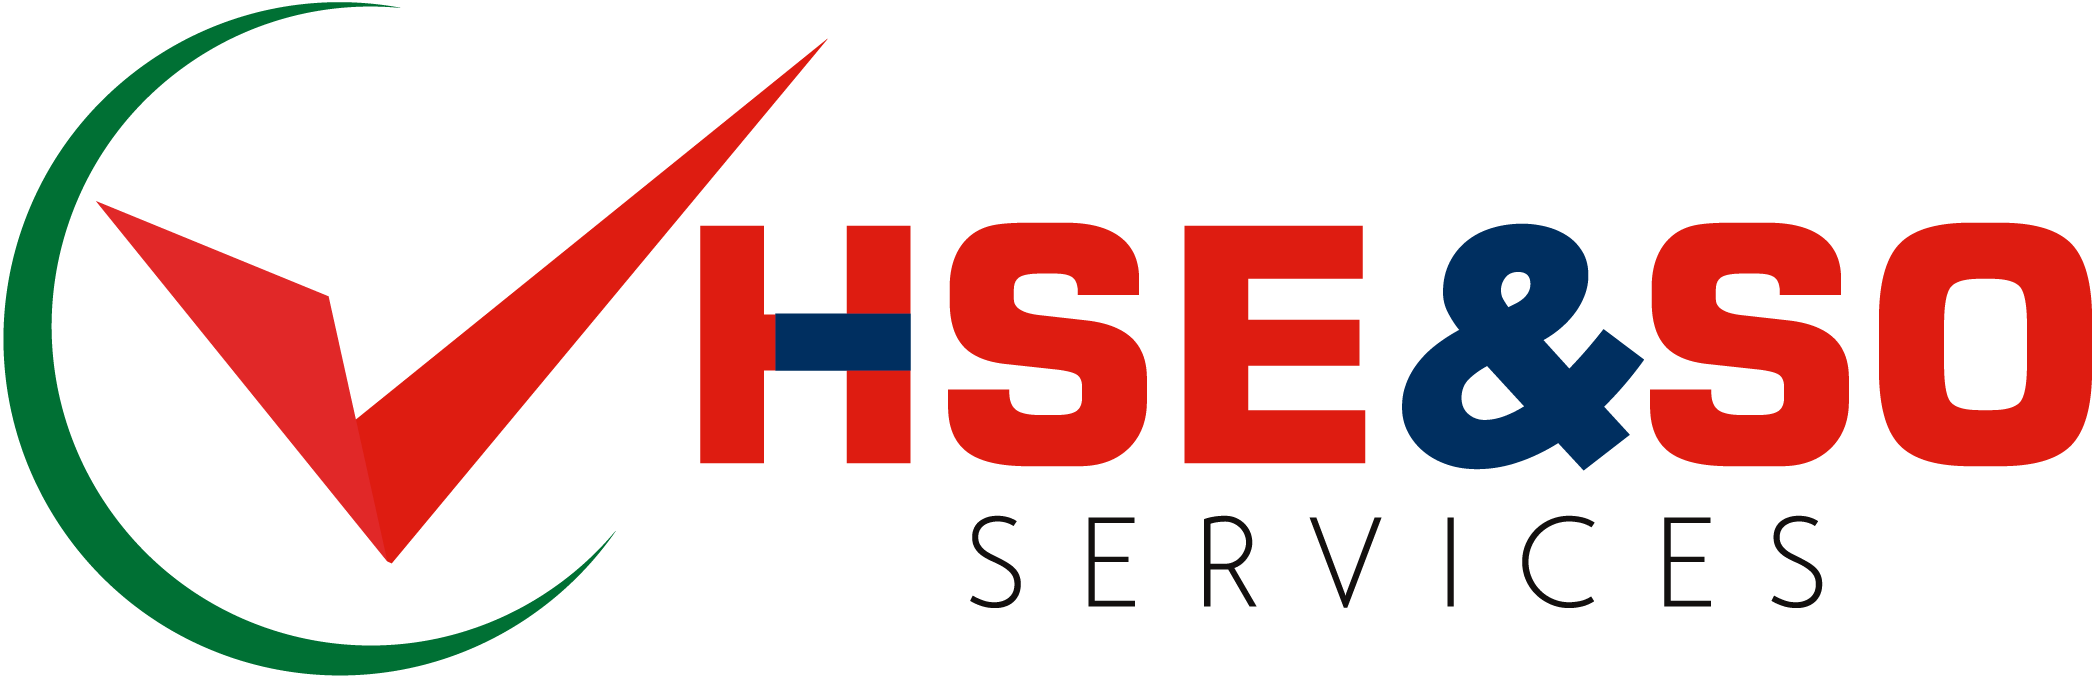 HSE & SO SERVICES LTDA